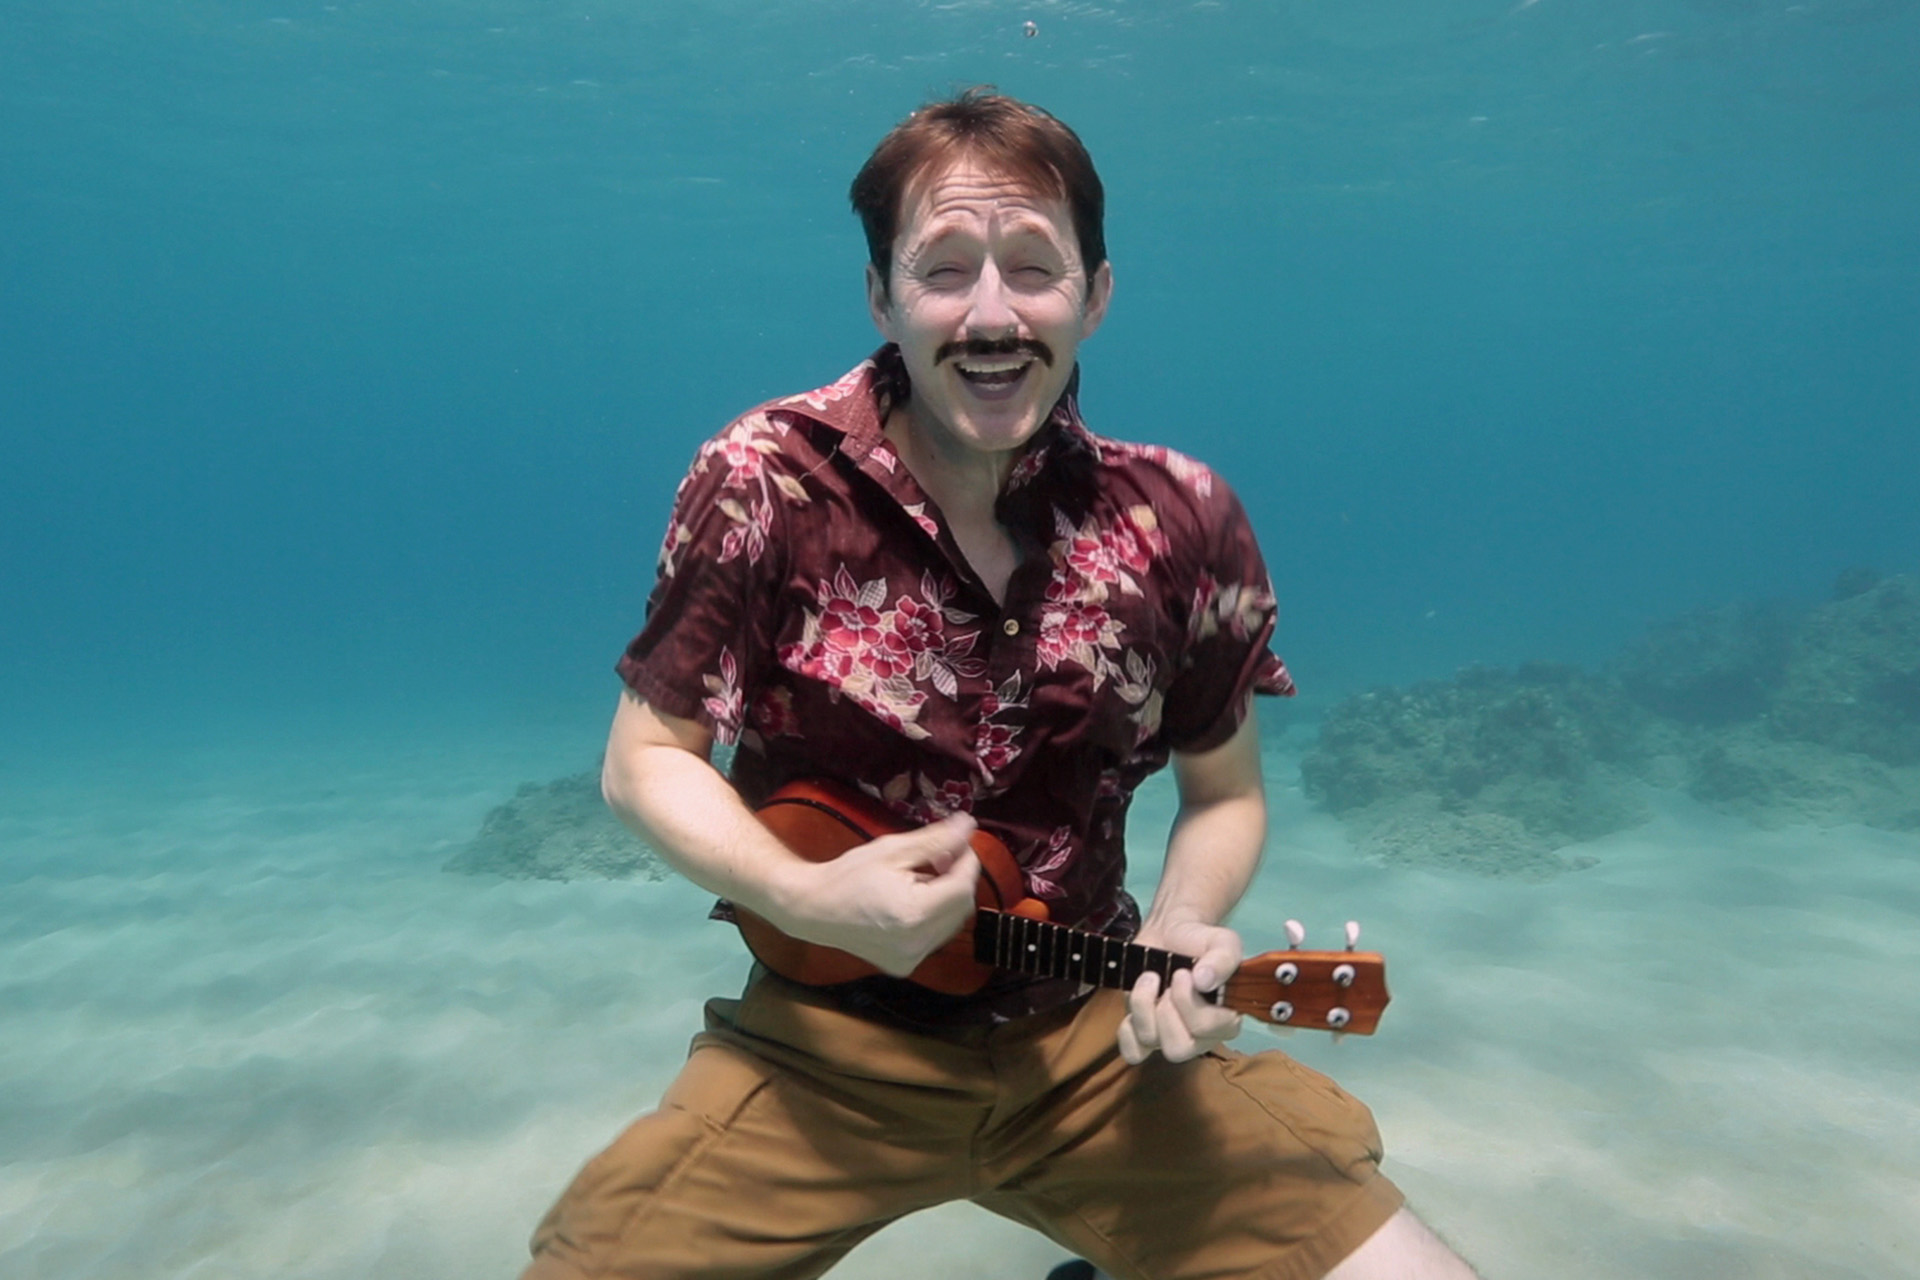 Robert Sams sings The Marine National Monuments Song with his ukelele underwater.